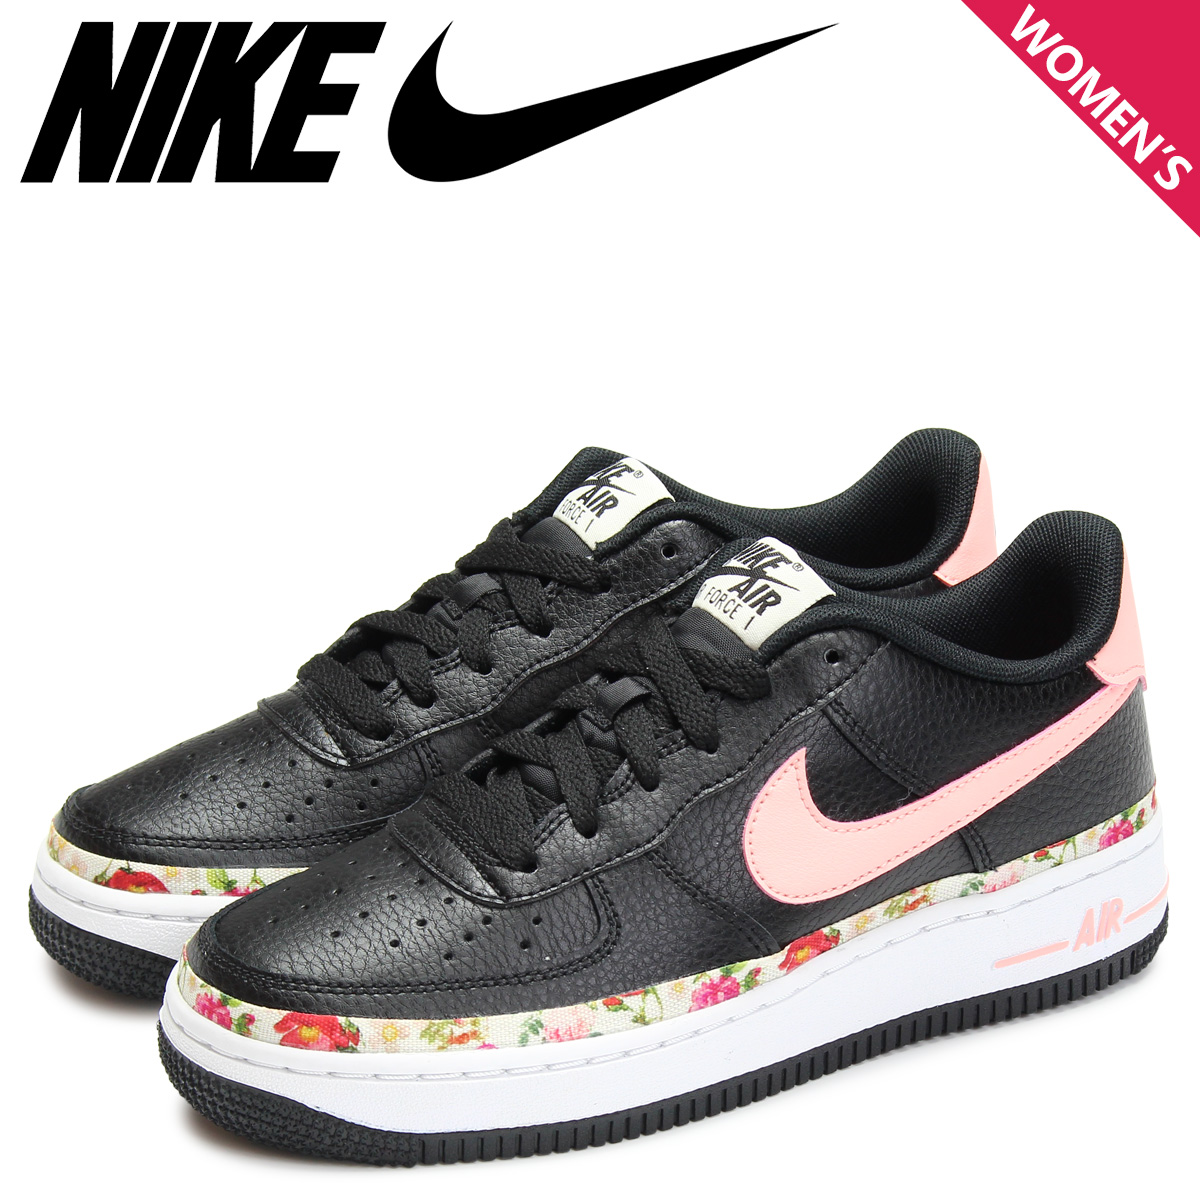 NIKE Nike air force 1 sneakers Lady's AIR FORCE 1 V.F. GS black black BQ2501 001